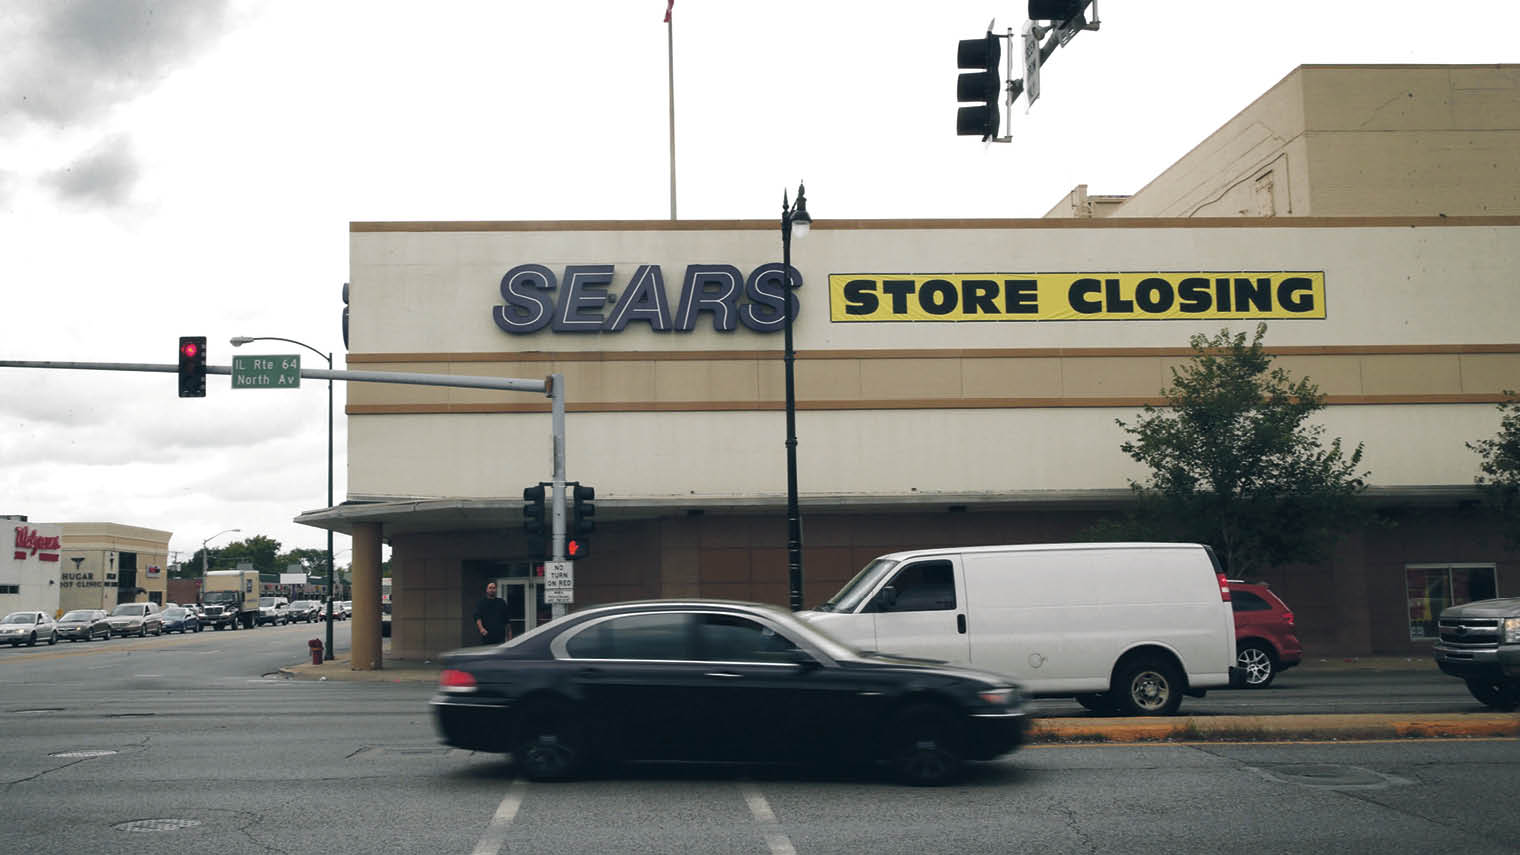 Sears storefront closing down